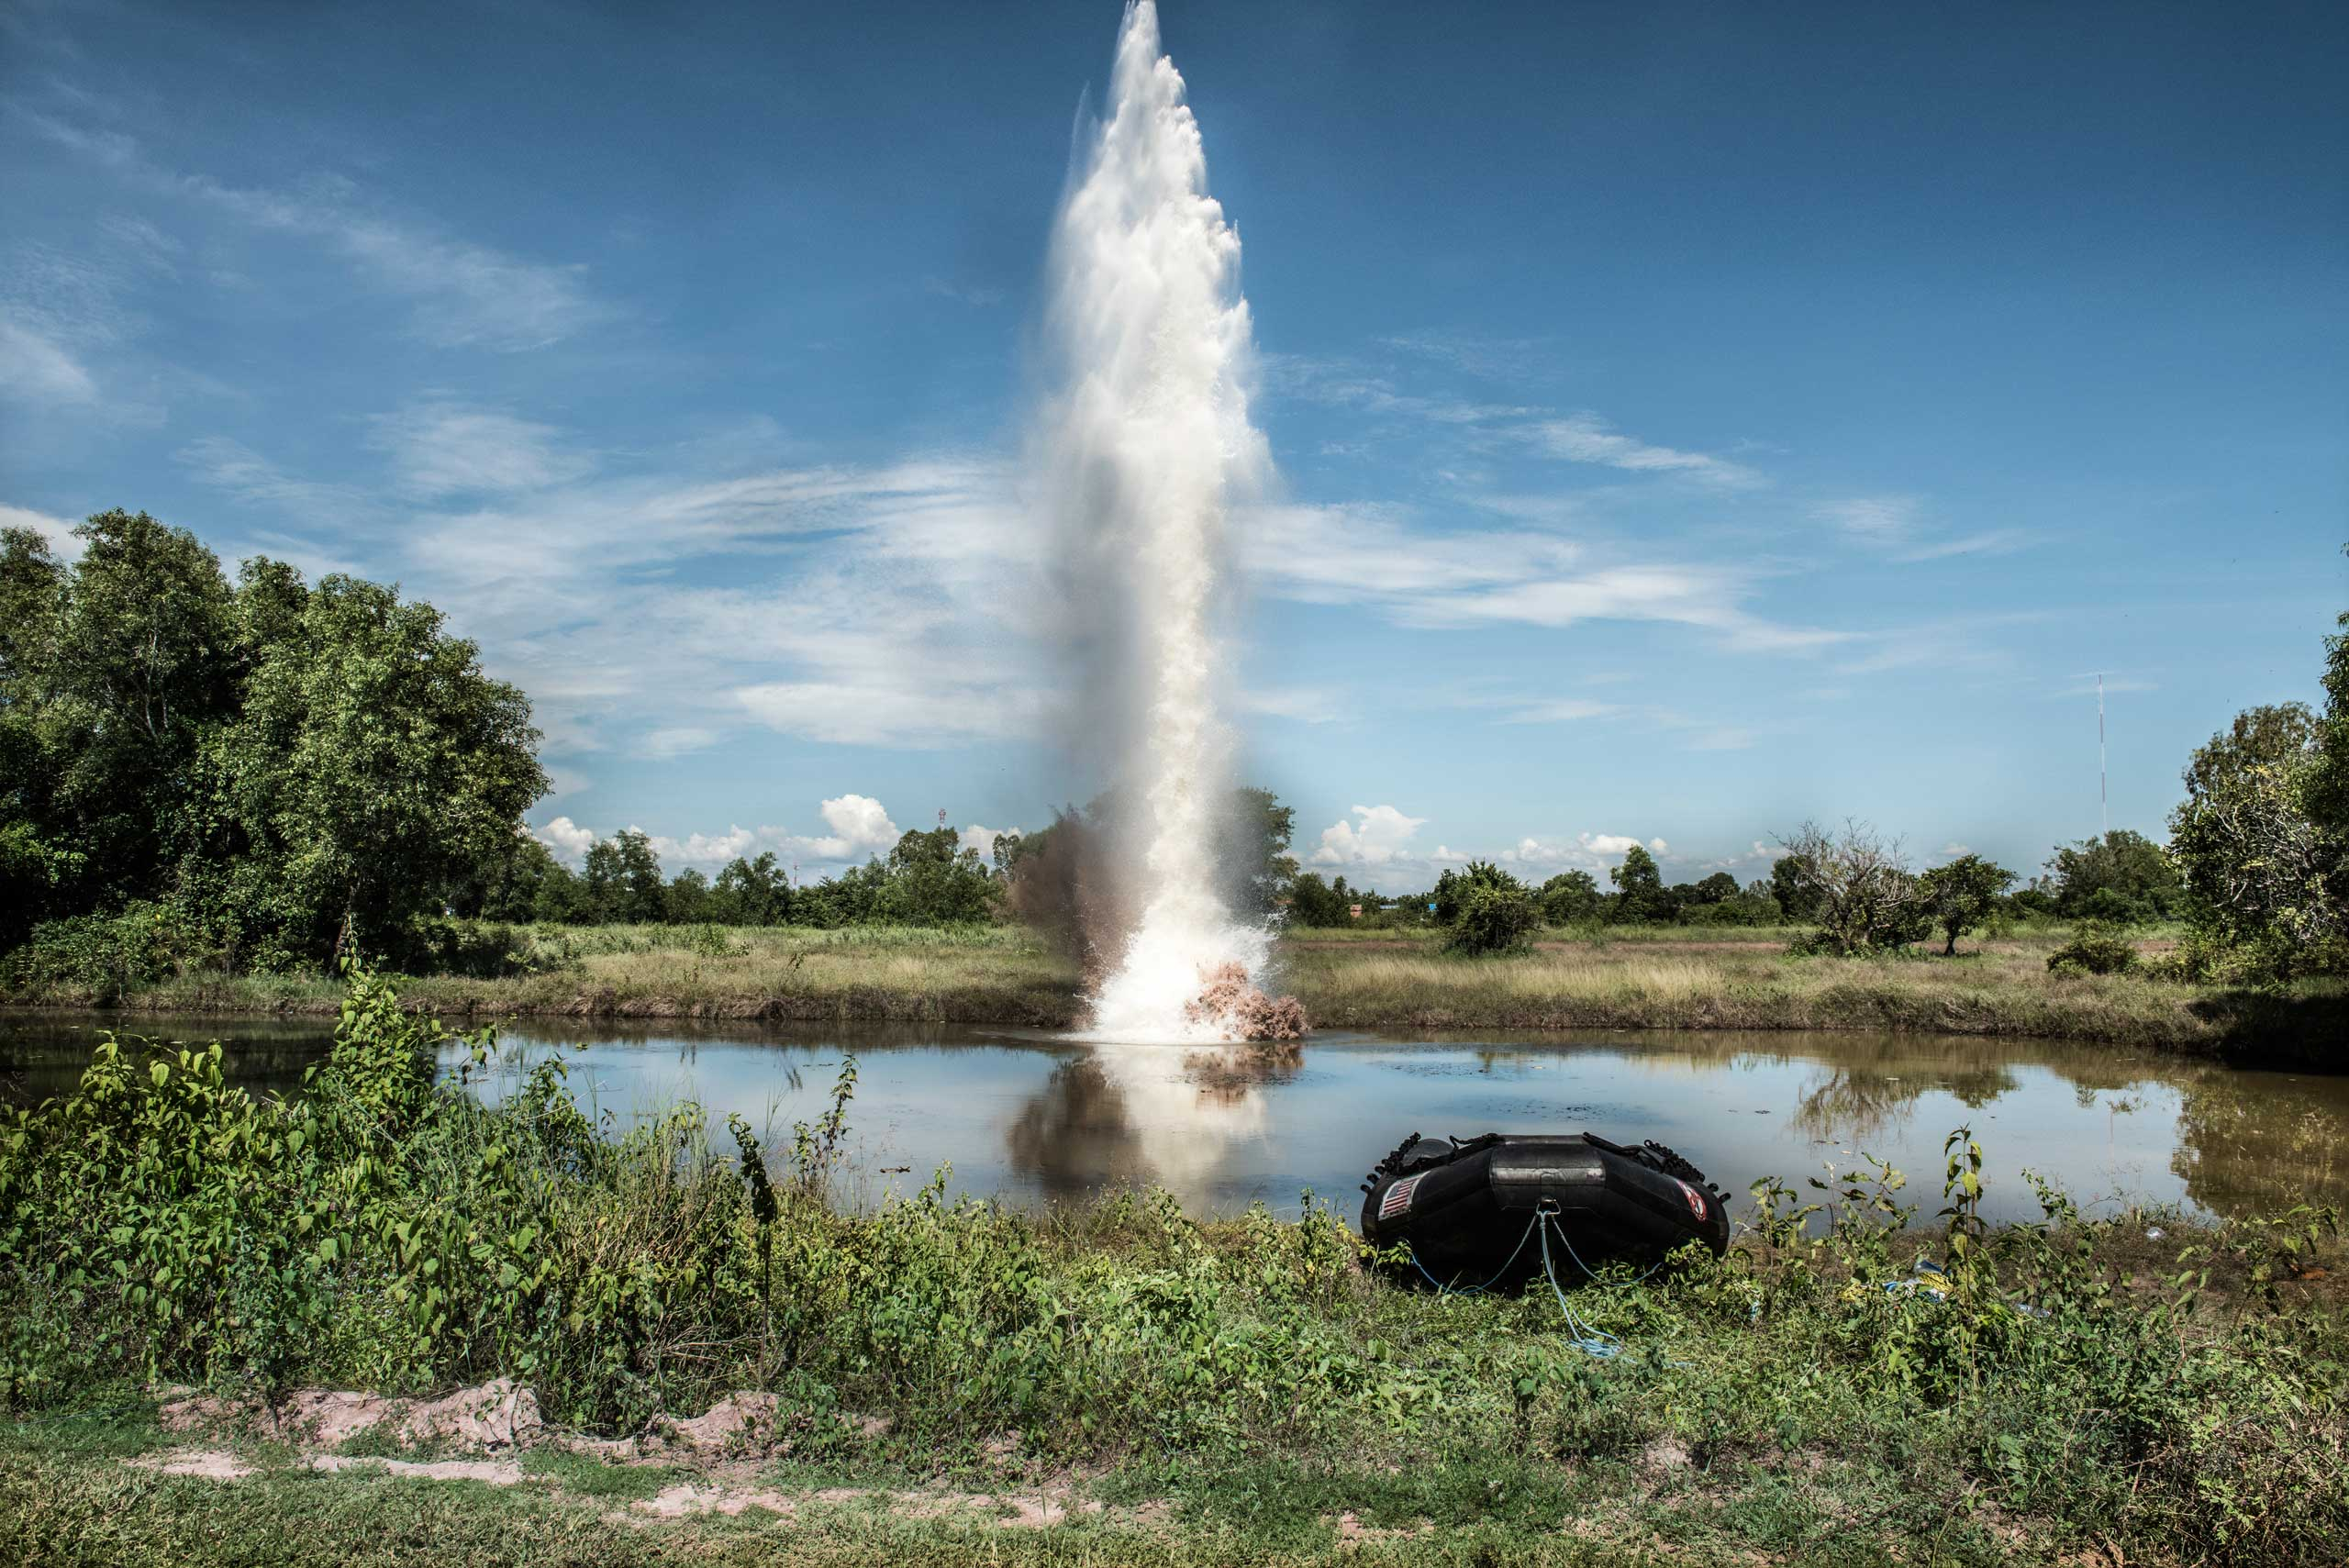 A plume of water shoots into the sky after liquid explosives are detonated underwater. The explosives were tested to see if they would be a viable solution to detonate UXO underwater. The test took place at the divers' training centre in Kampong Chhanang Province, Cambodia in Feb. 2014